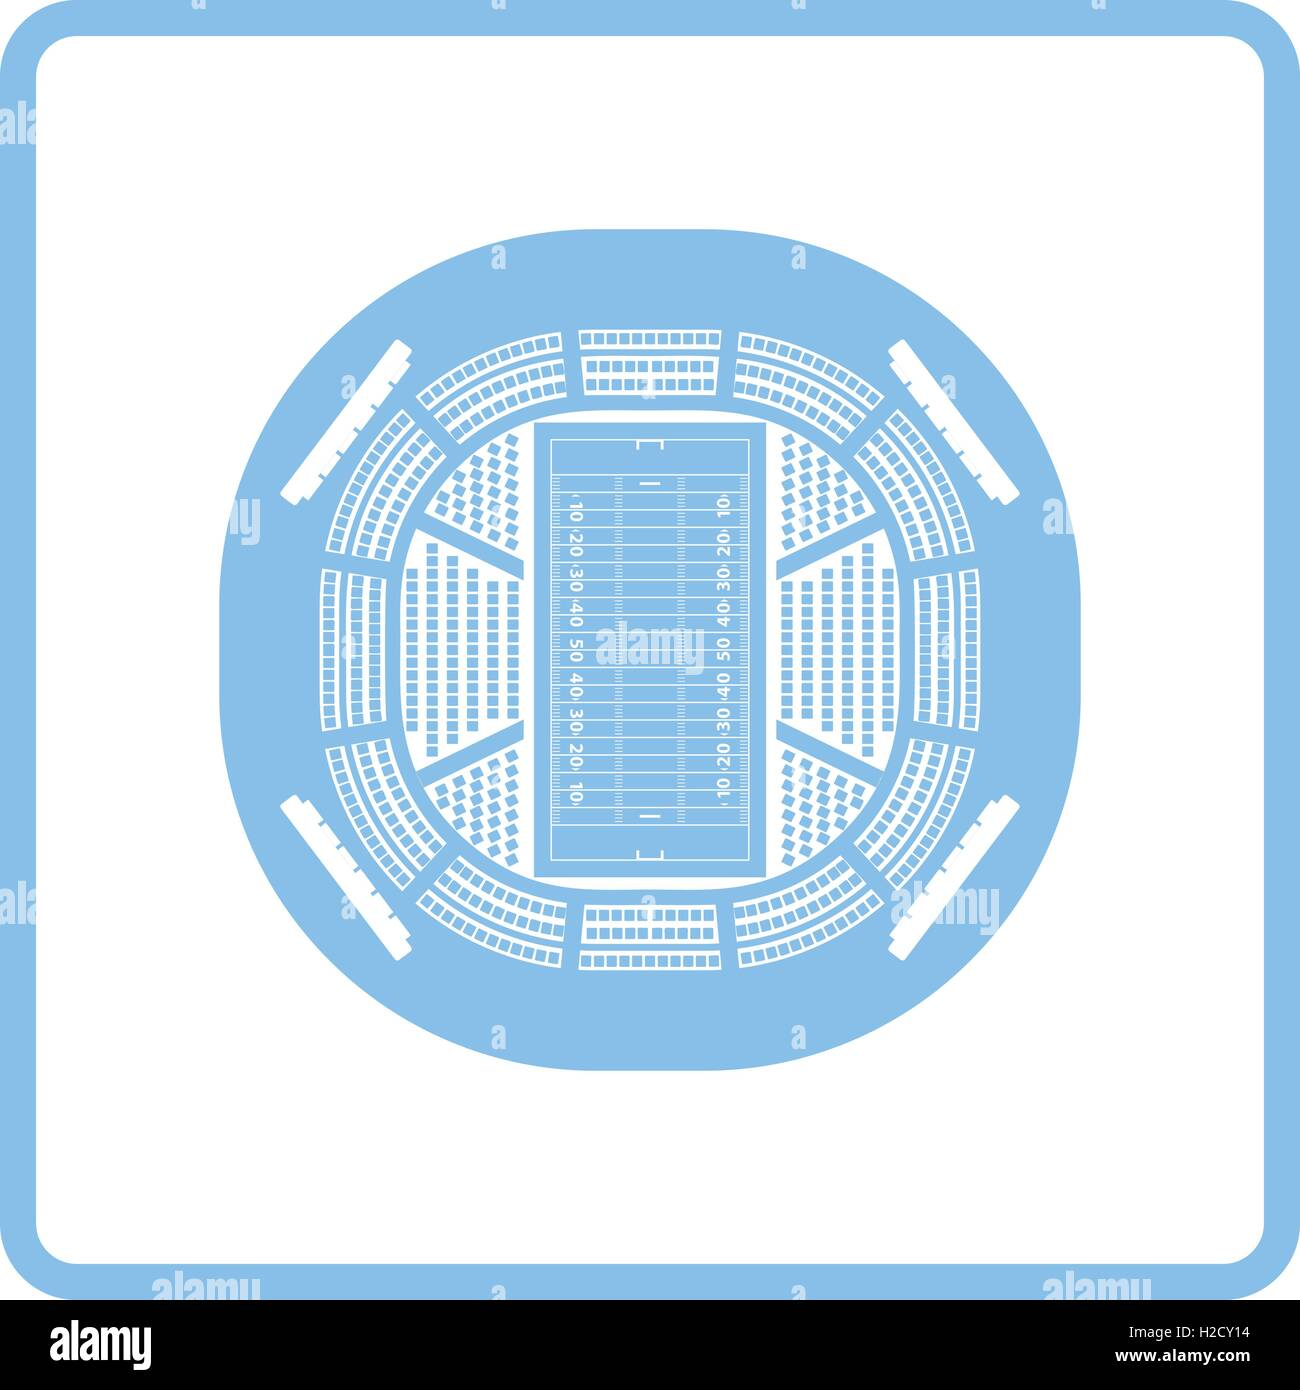 hight resolution of american football stadium bird s eye view icon blue frame design vector illustration